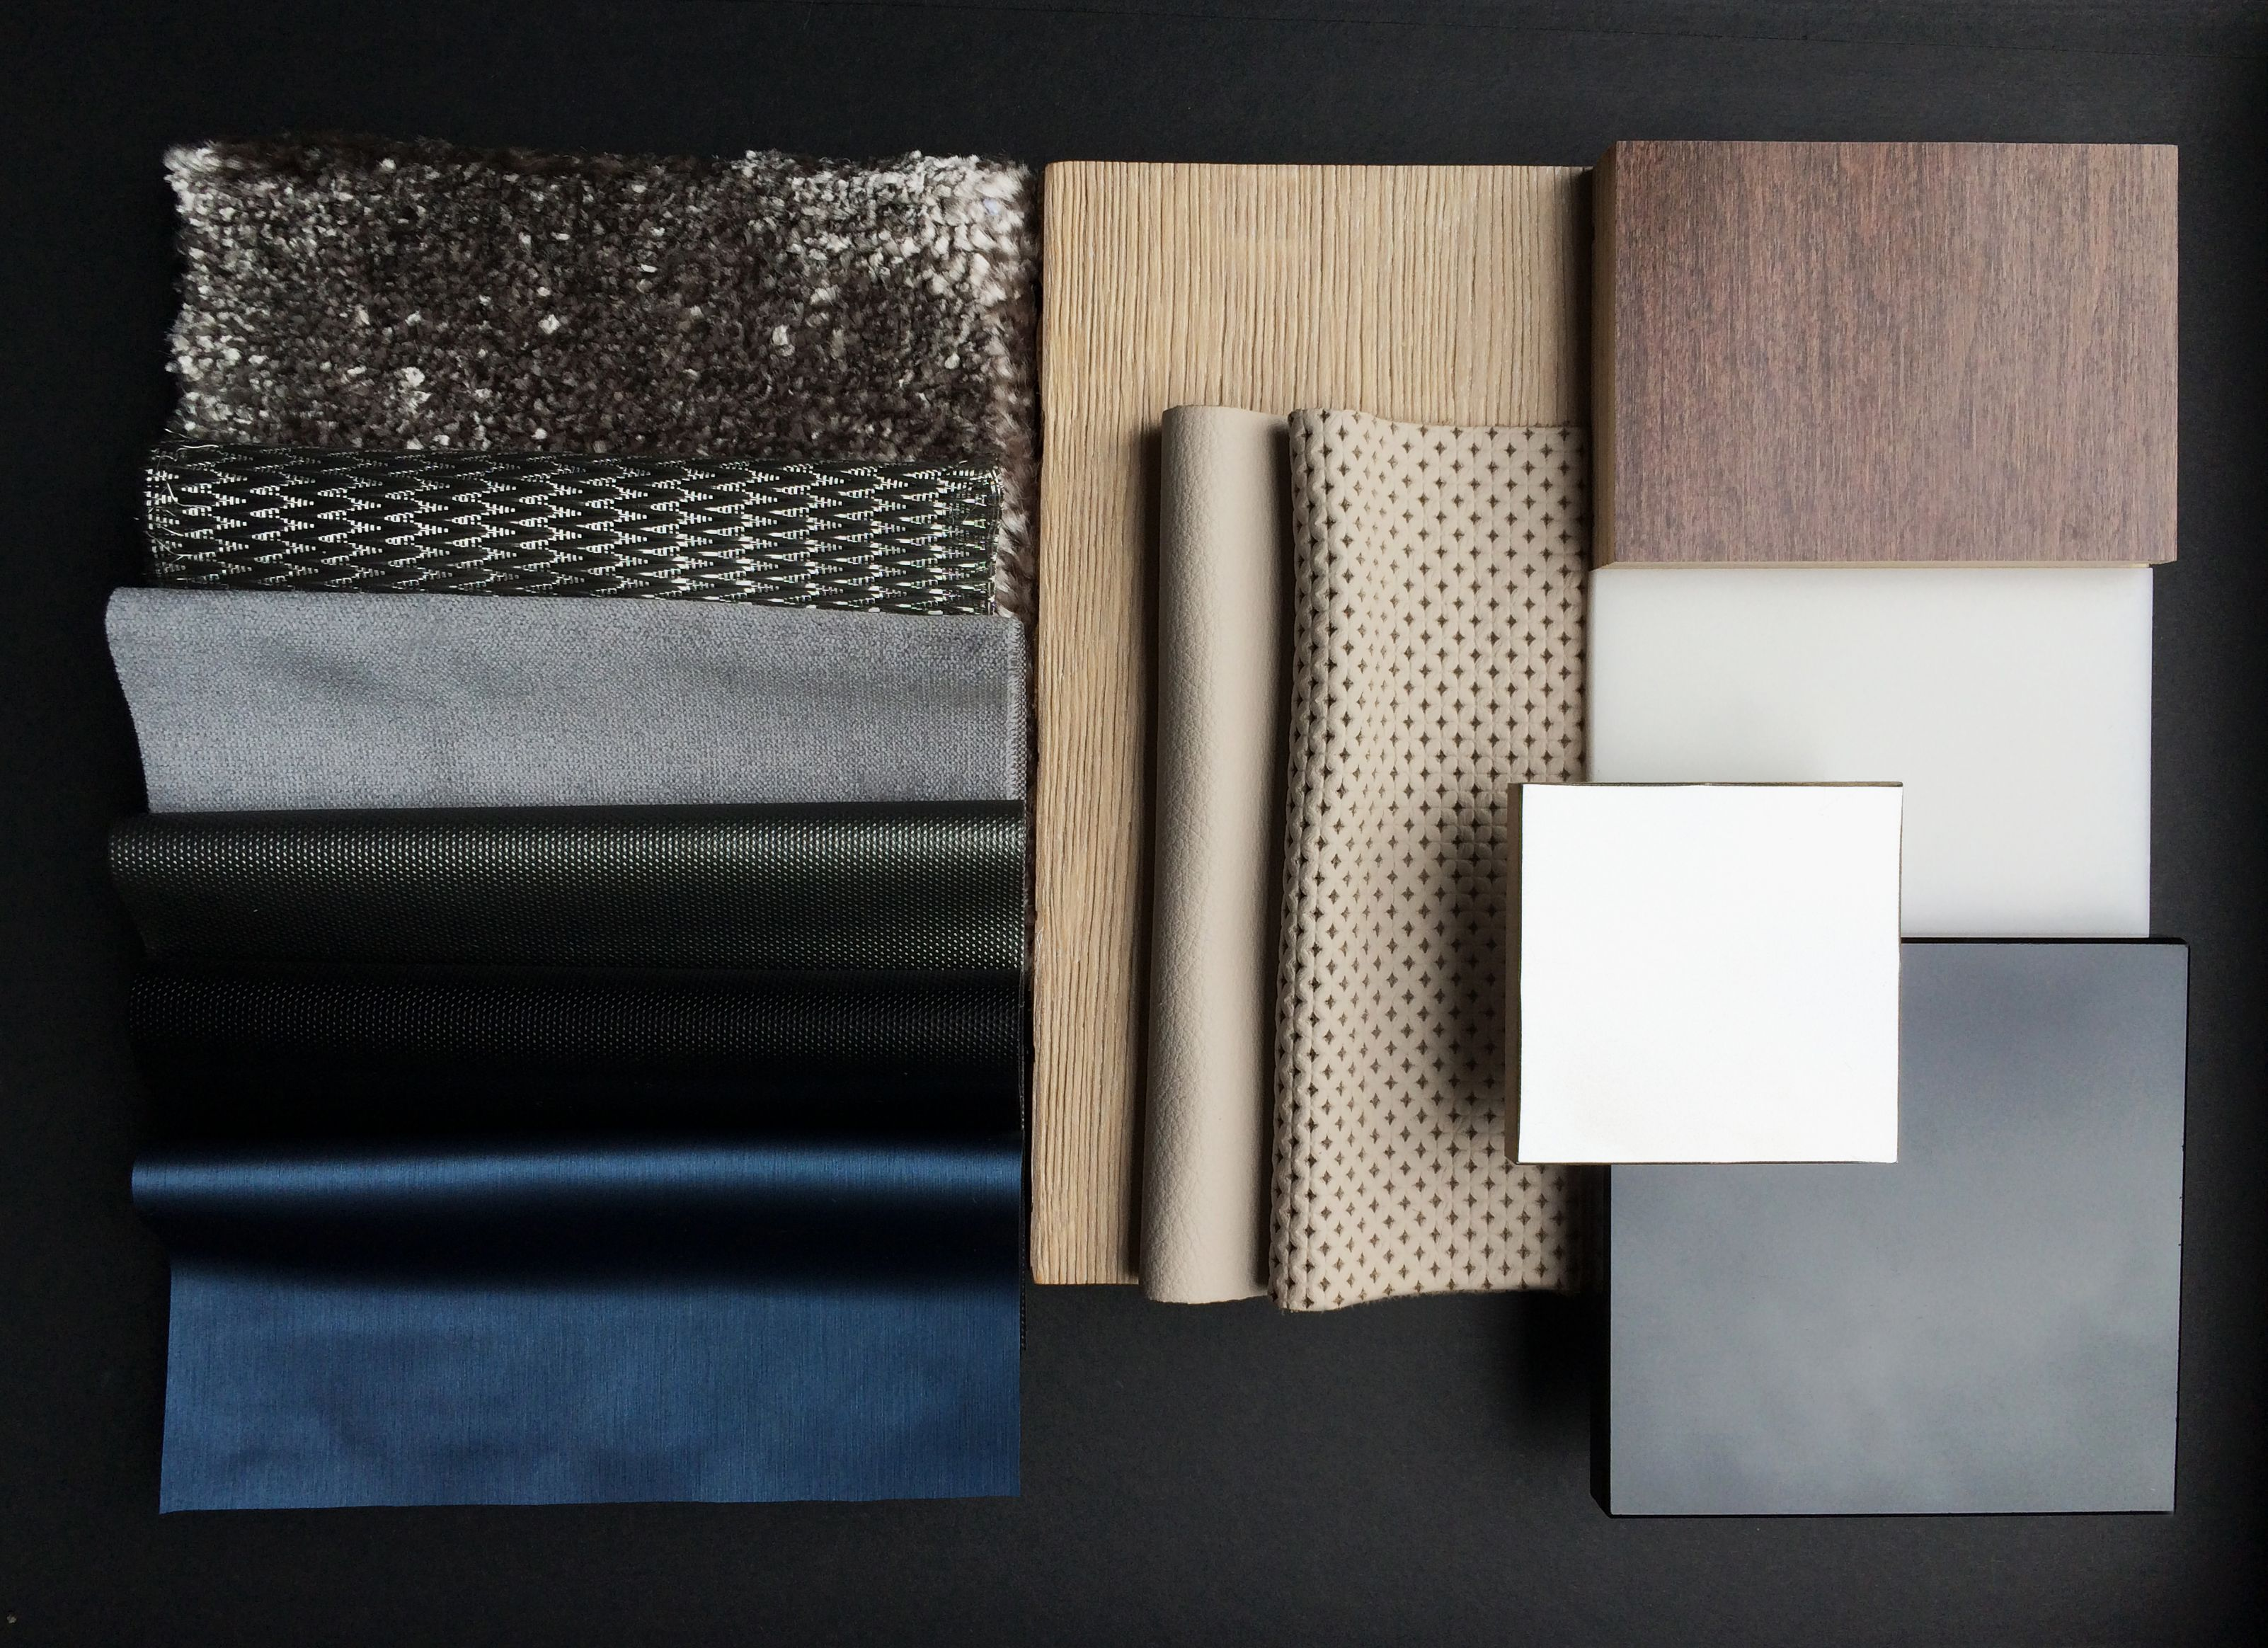 REIMANN INTERIOR DESIGN material sample box for a project with